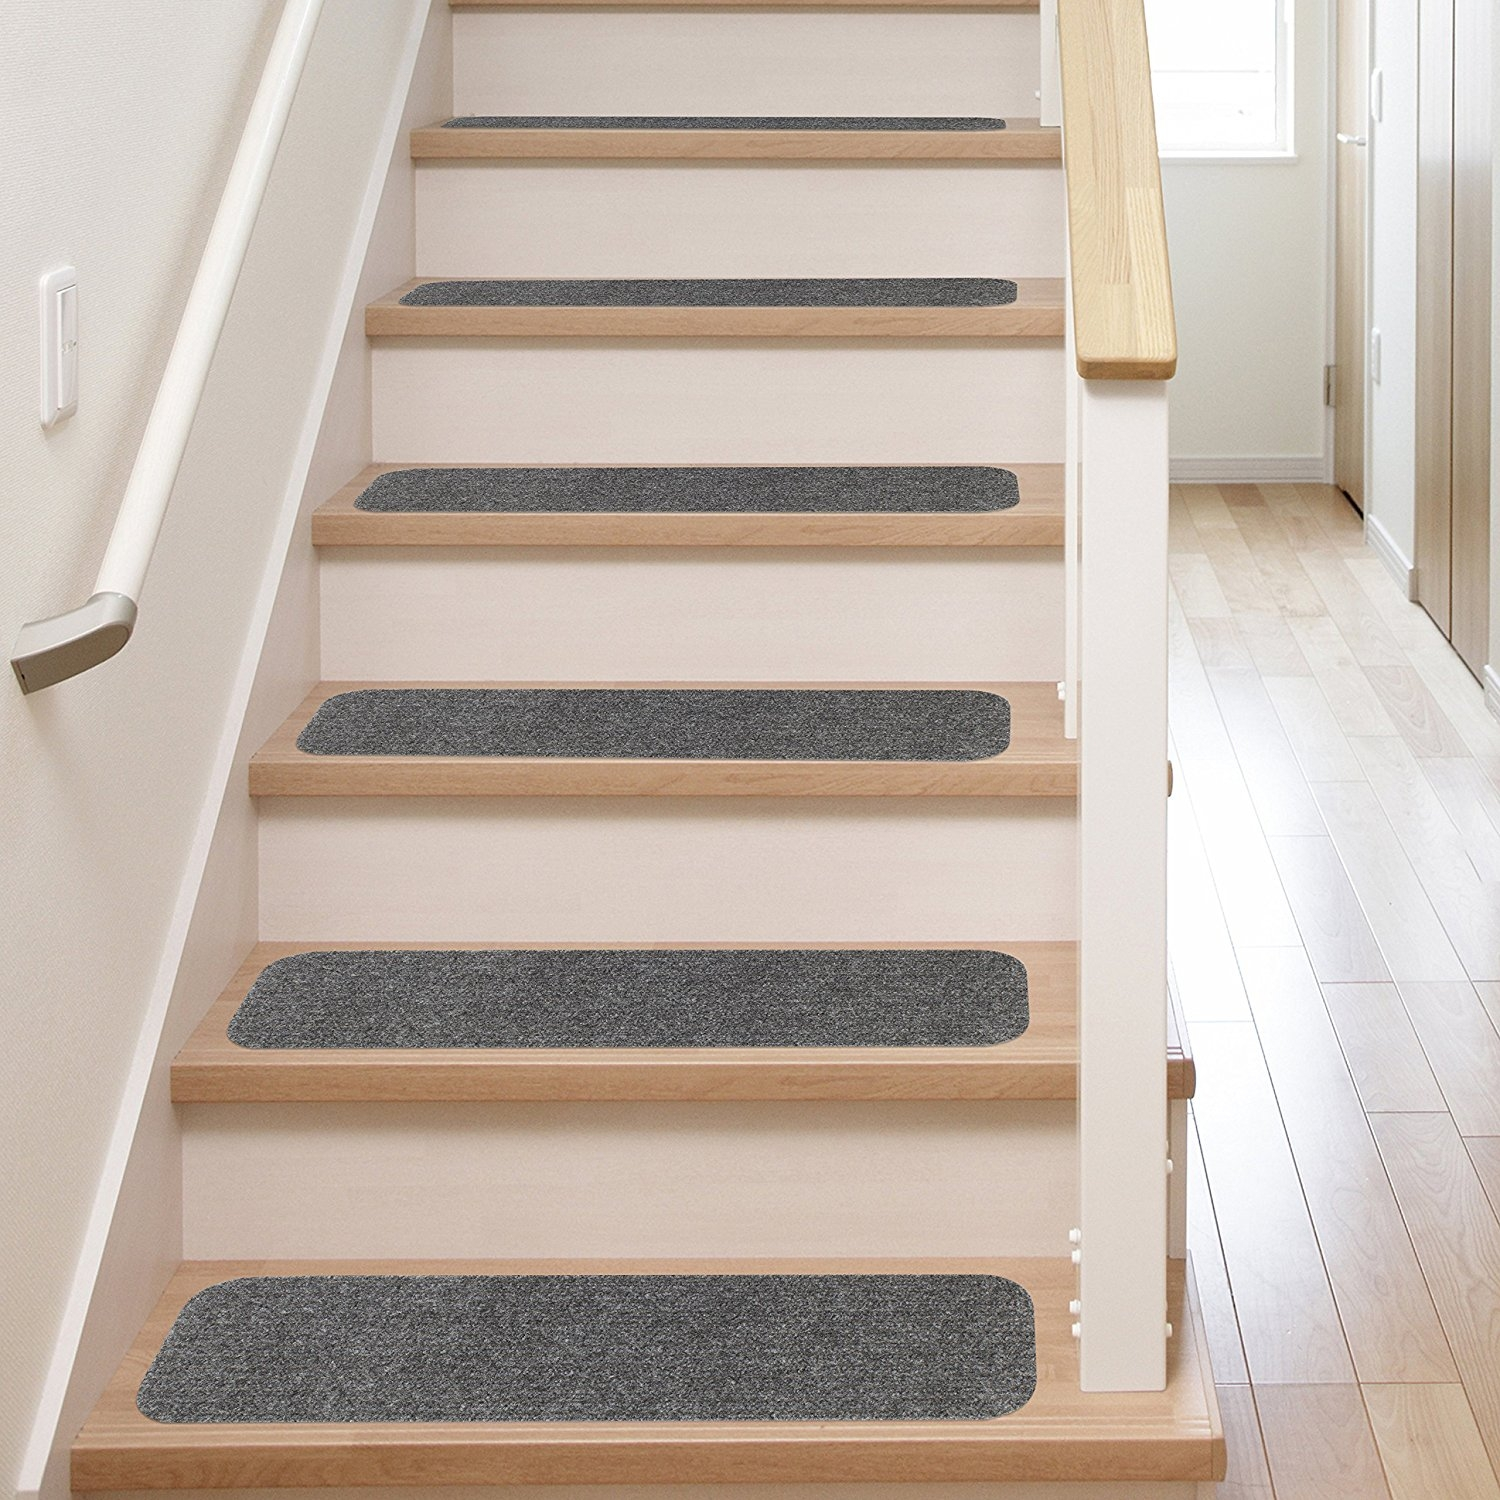 13 Stair Treads Non Slip Carpet Pads Easy Tape Installation Inside Indoor Stair  Treads Carpet (